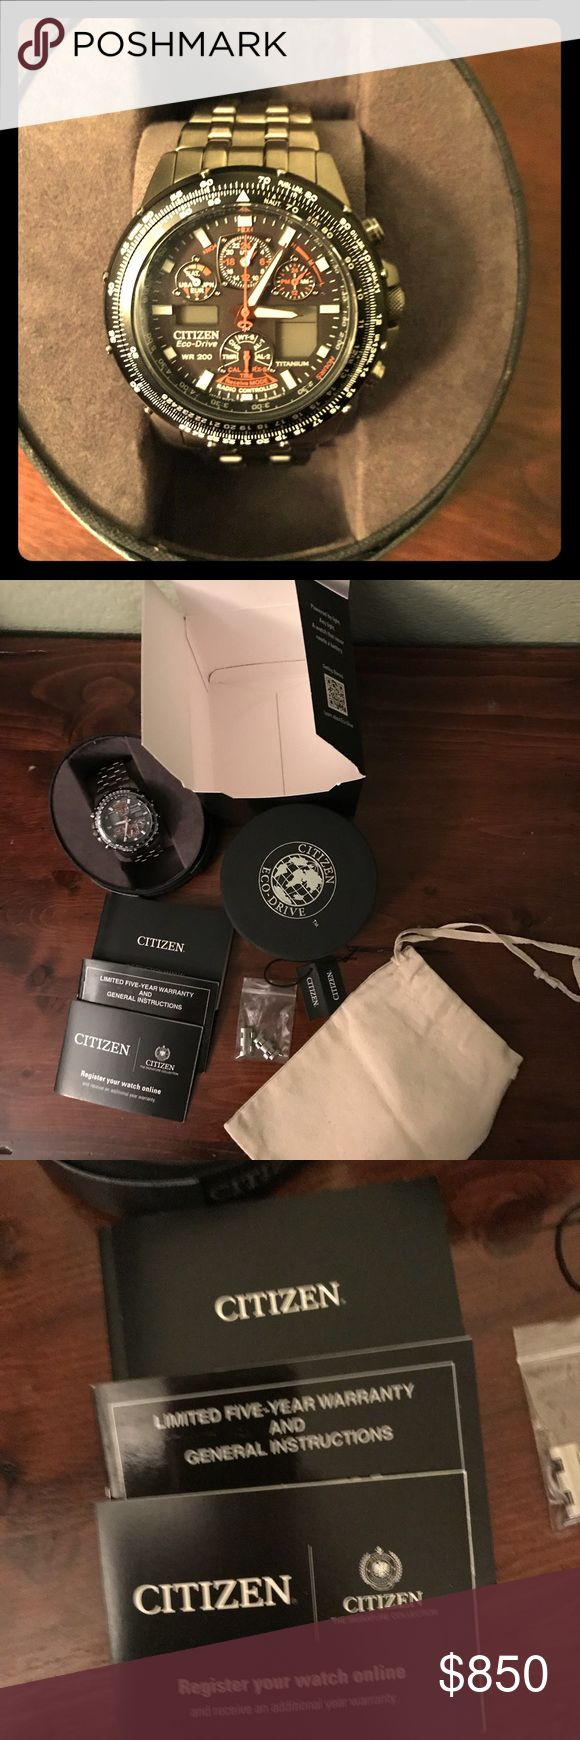 Men's citizen watch eco drive wr200 New with tags, box, booklets and extend pieces. Purchased from Jared a year ago. No low ballers please! Citizen Accessories Watches